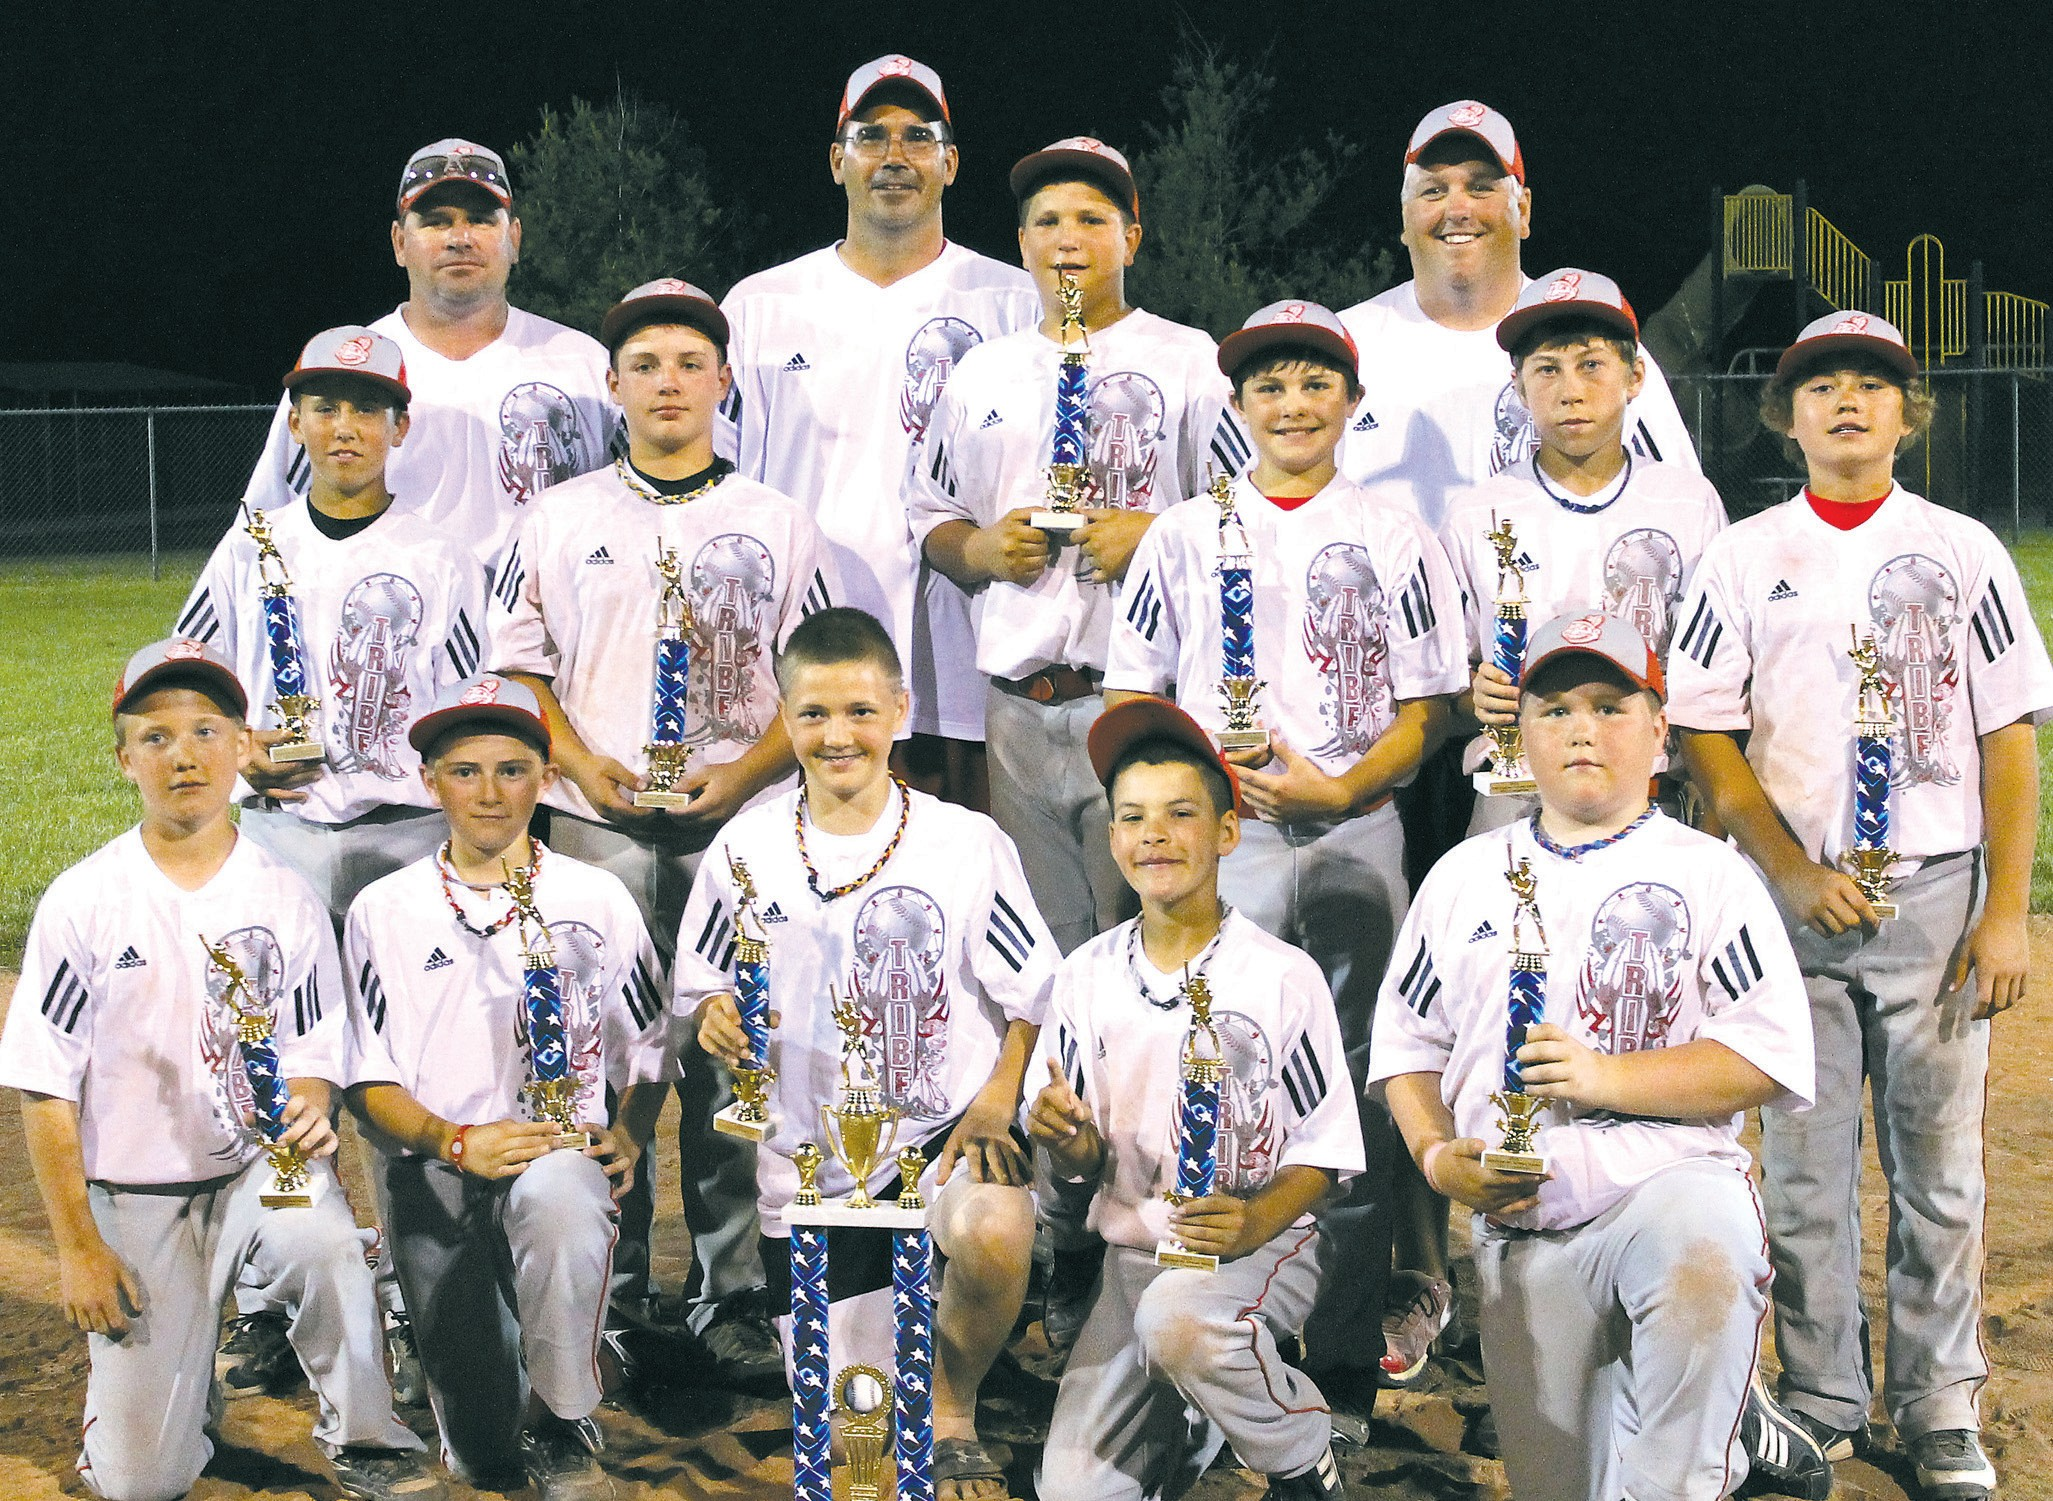 Monticello Tribe To Compete For National Title In Cooperstown N Y Carroll County Comet